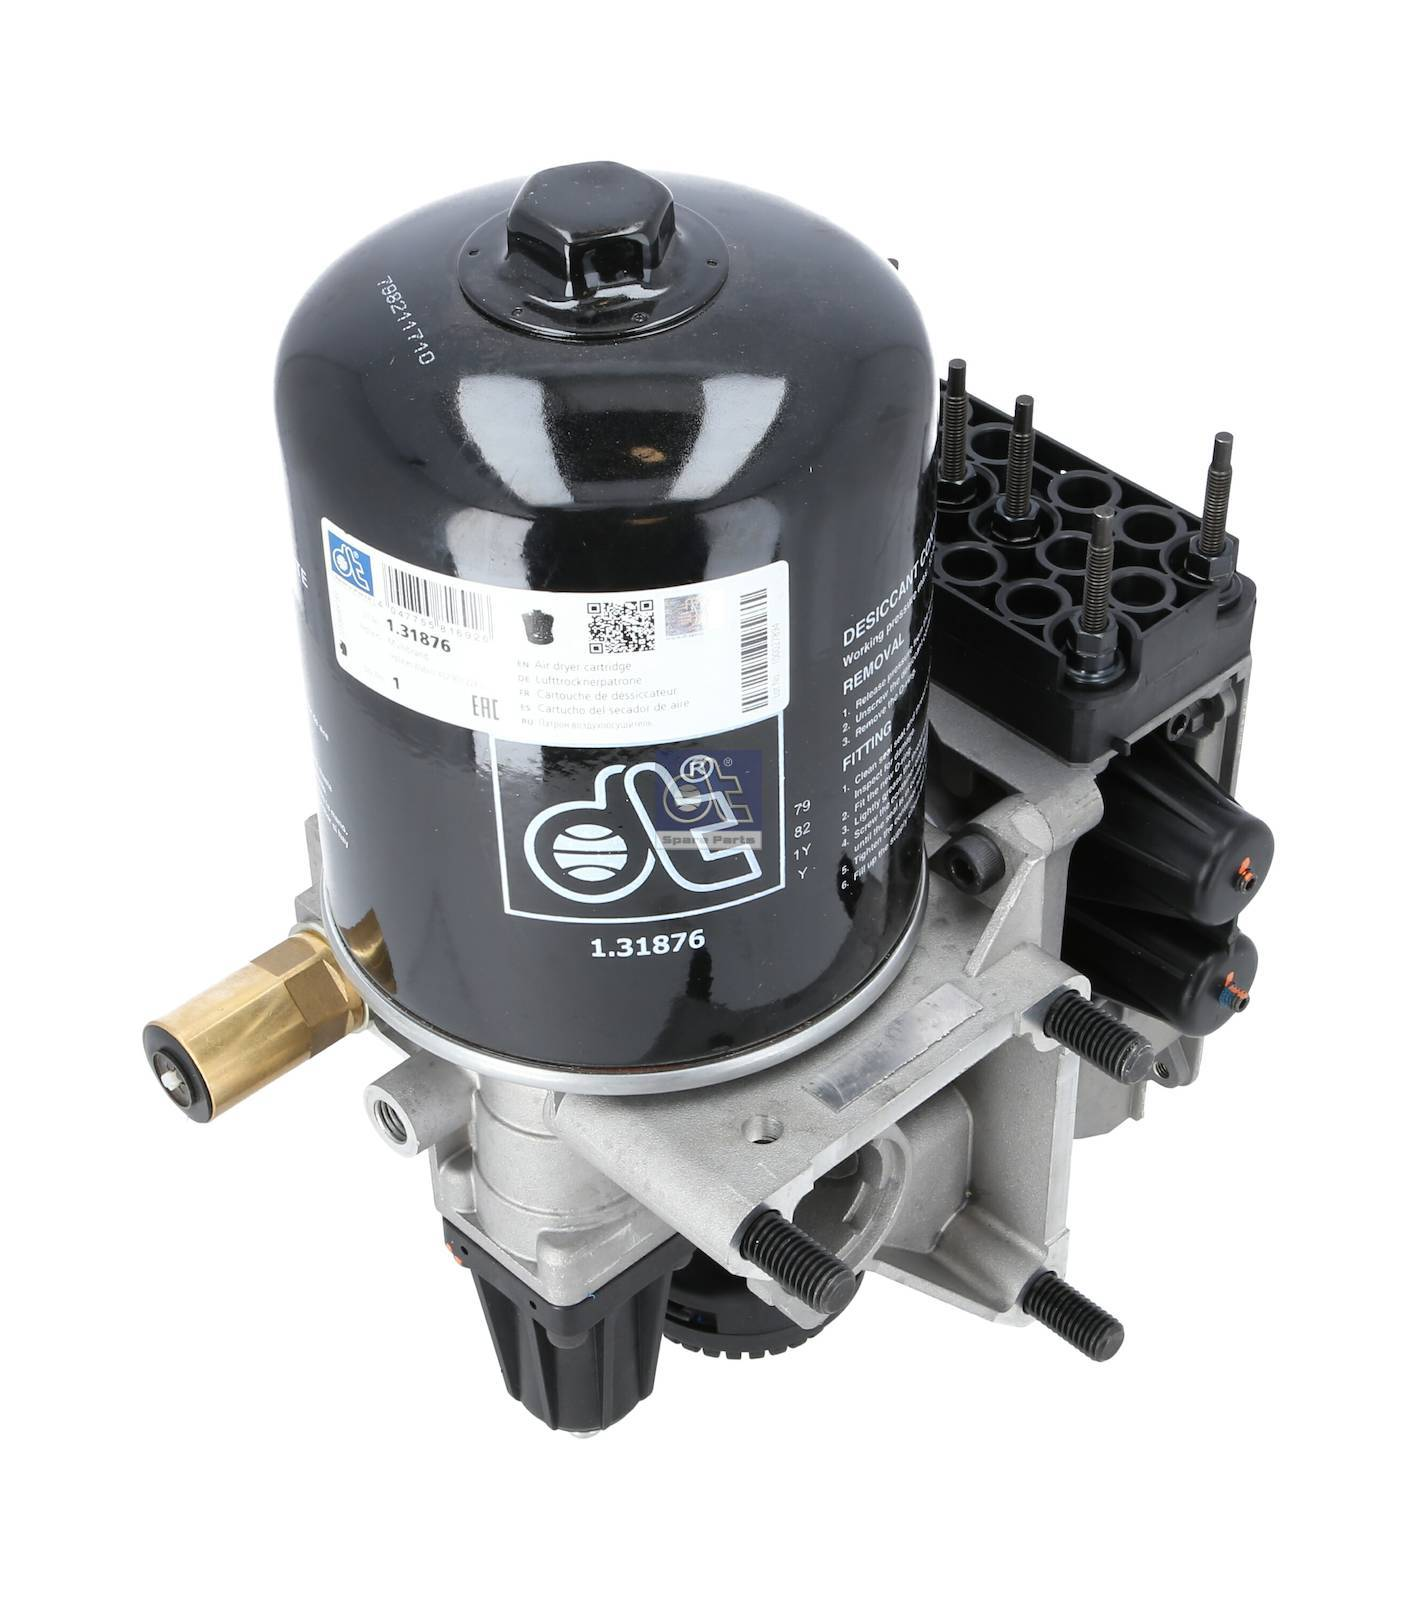 Air dryer, complete with valve, without control unit